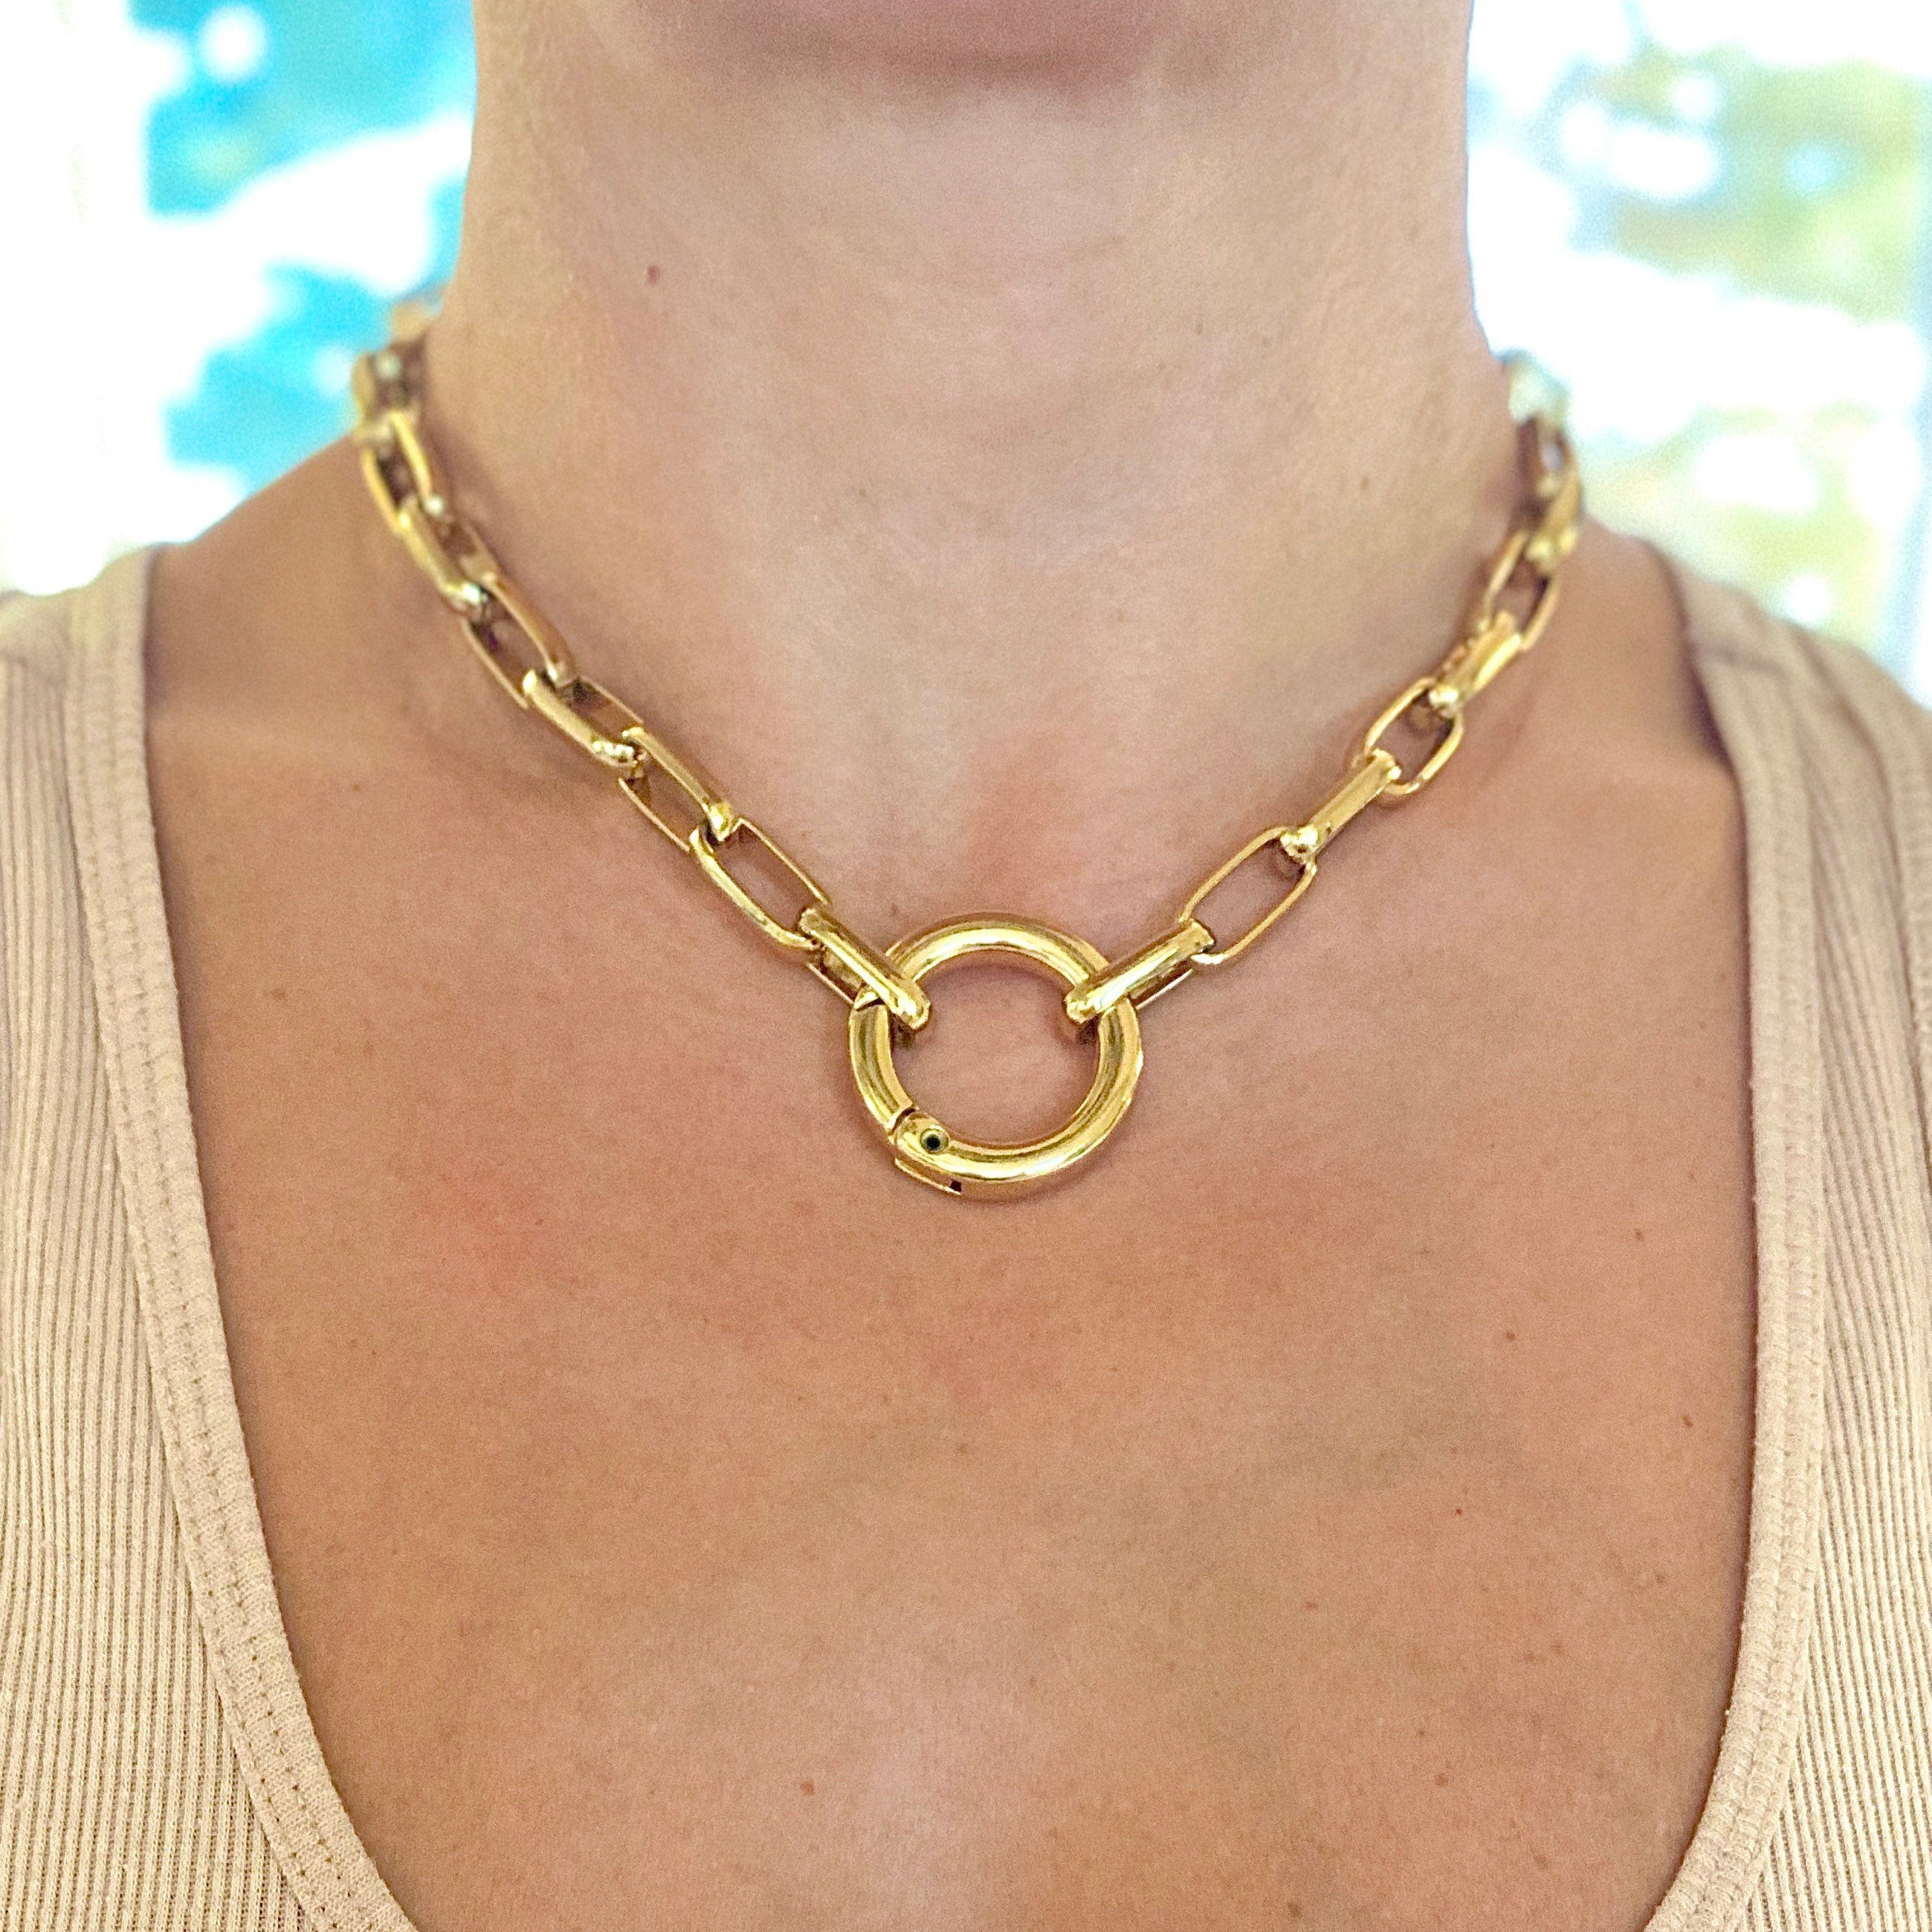 Gold Tone Large Link Choker Necklace Free Shipping